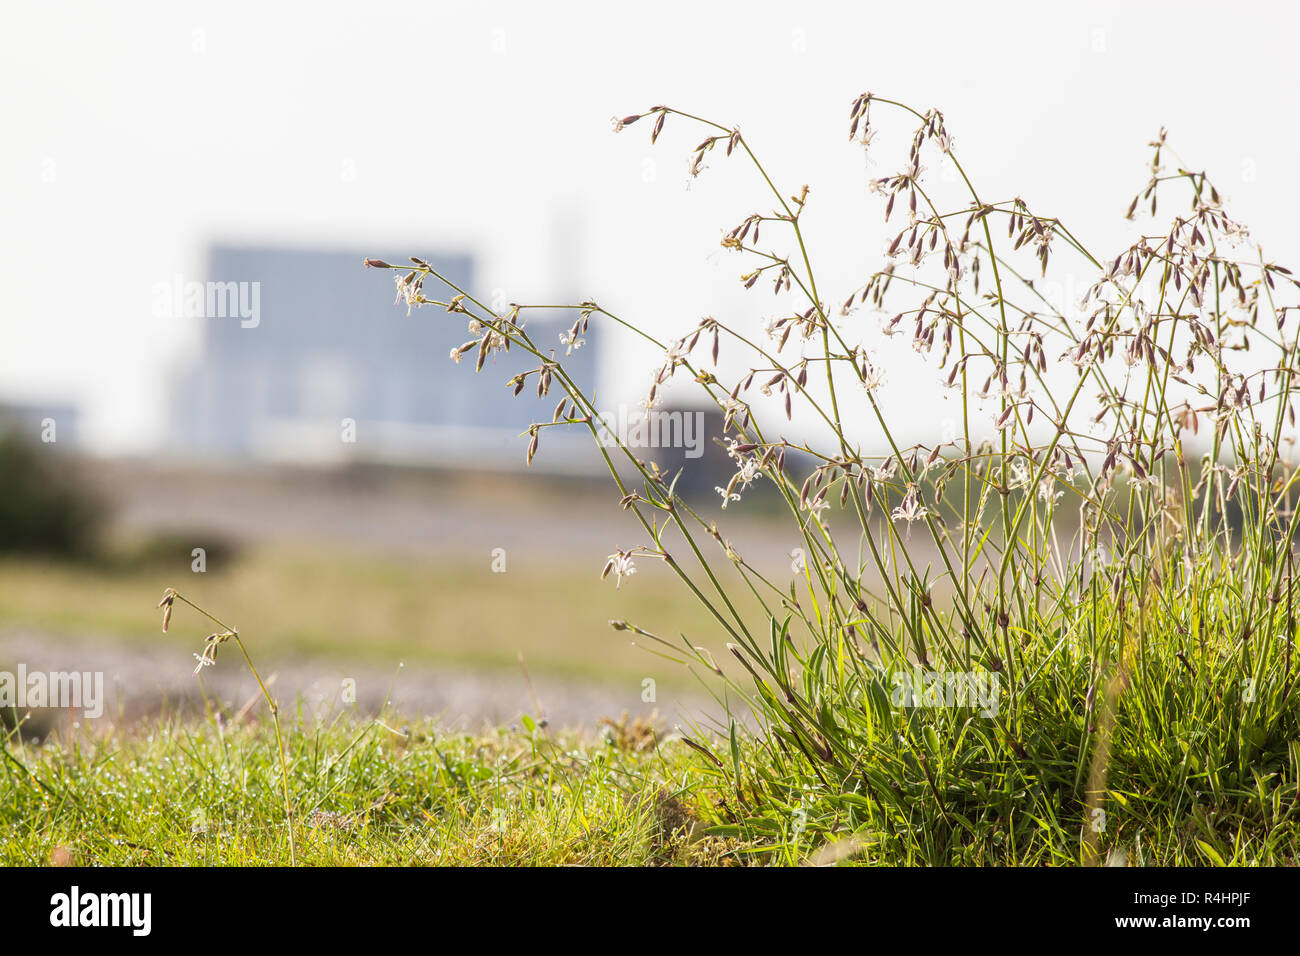 Nottingham Catchfly (Silene nutans) on Dungeness, Kent UK. EDF Nuclear power station in the background - Stock Image